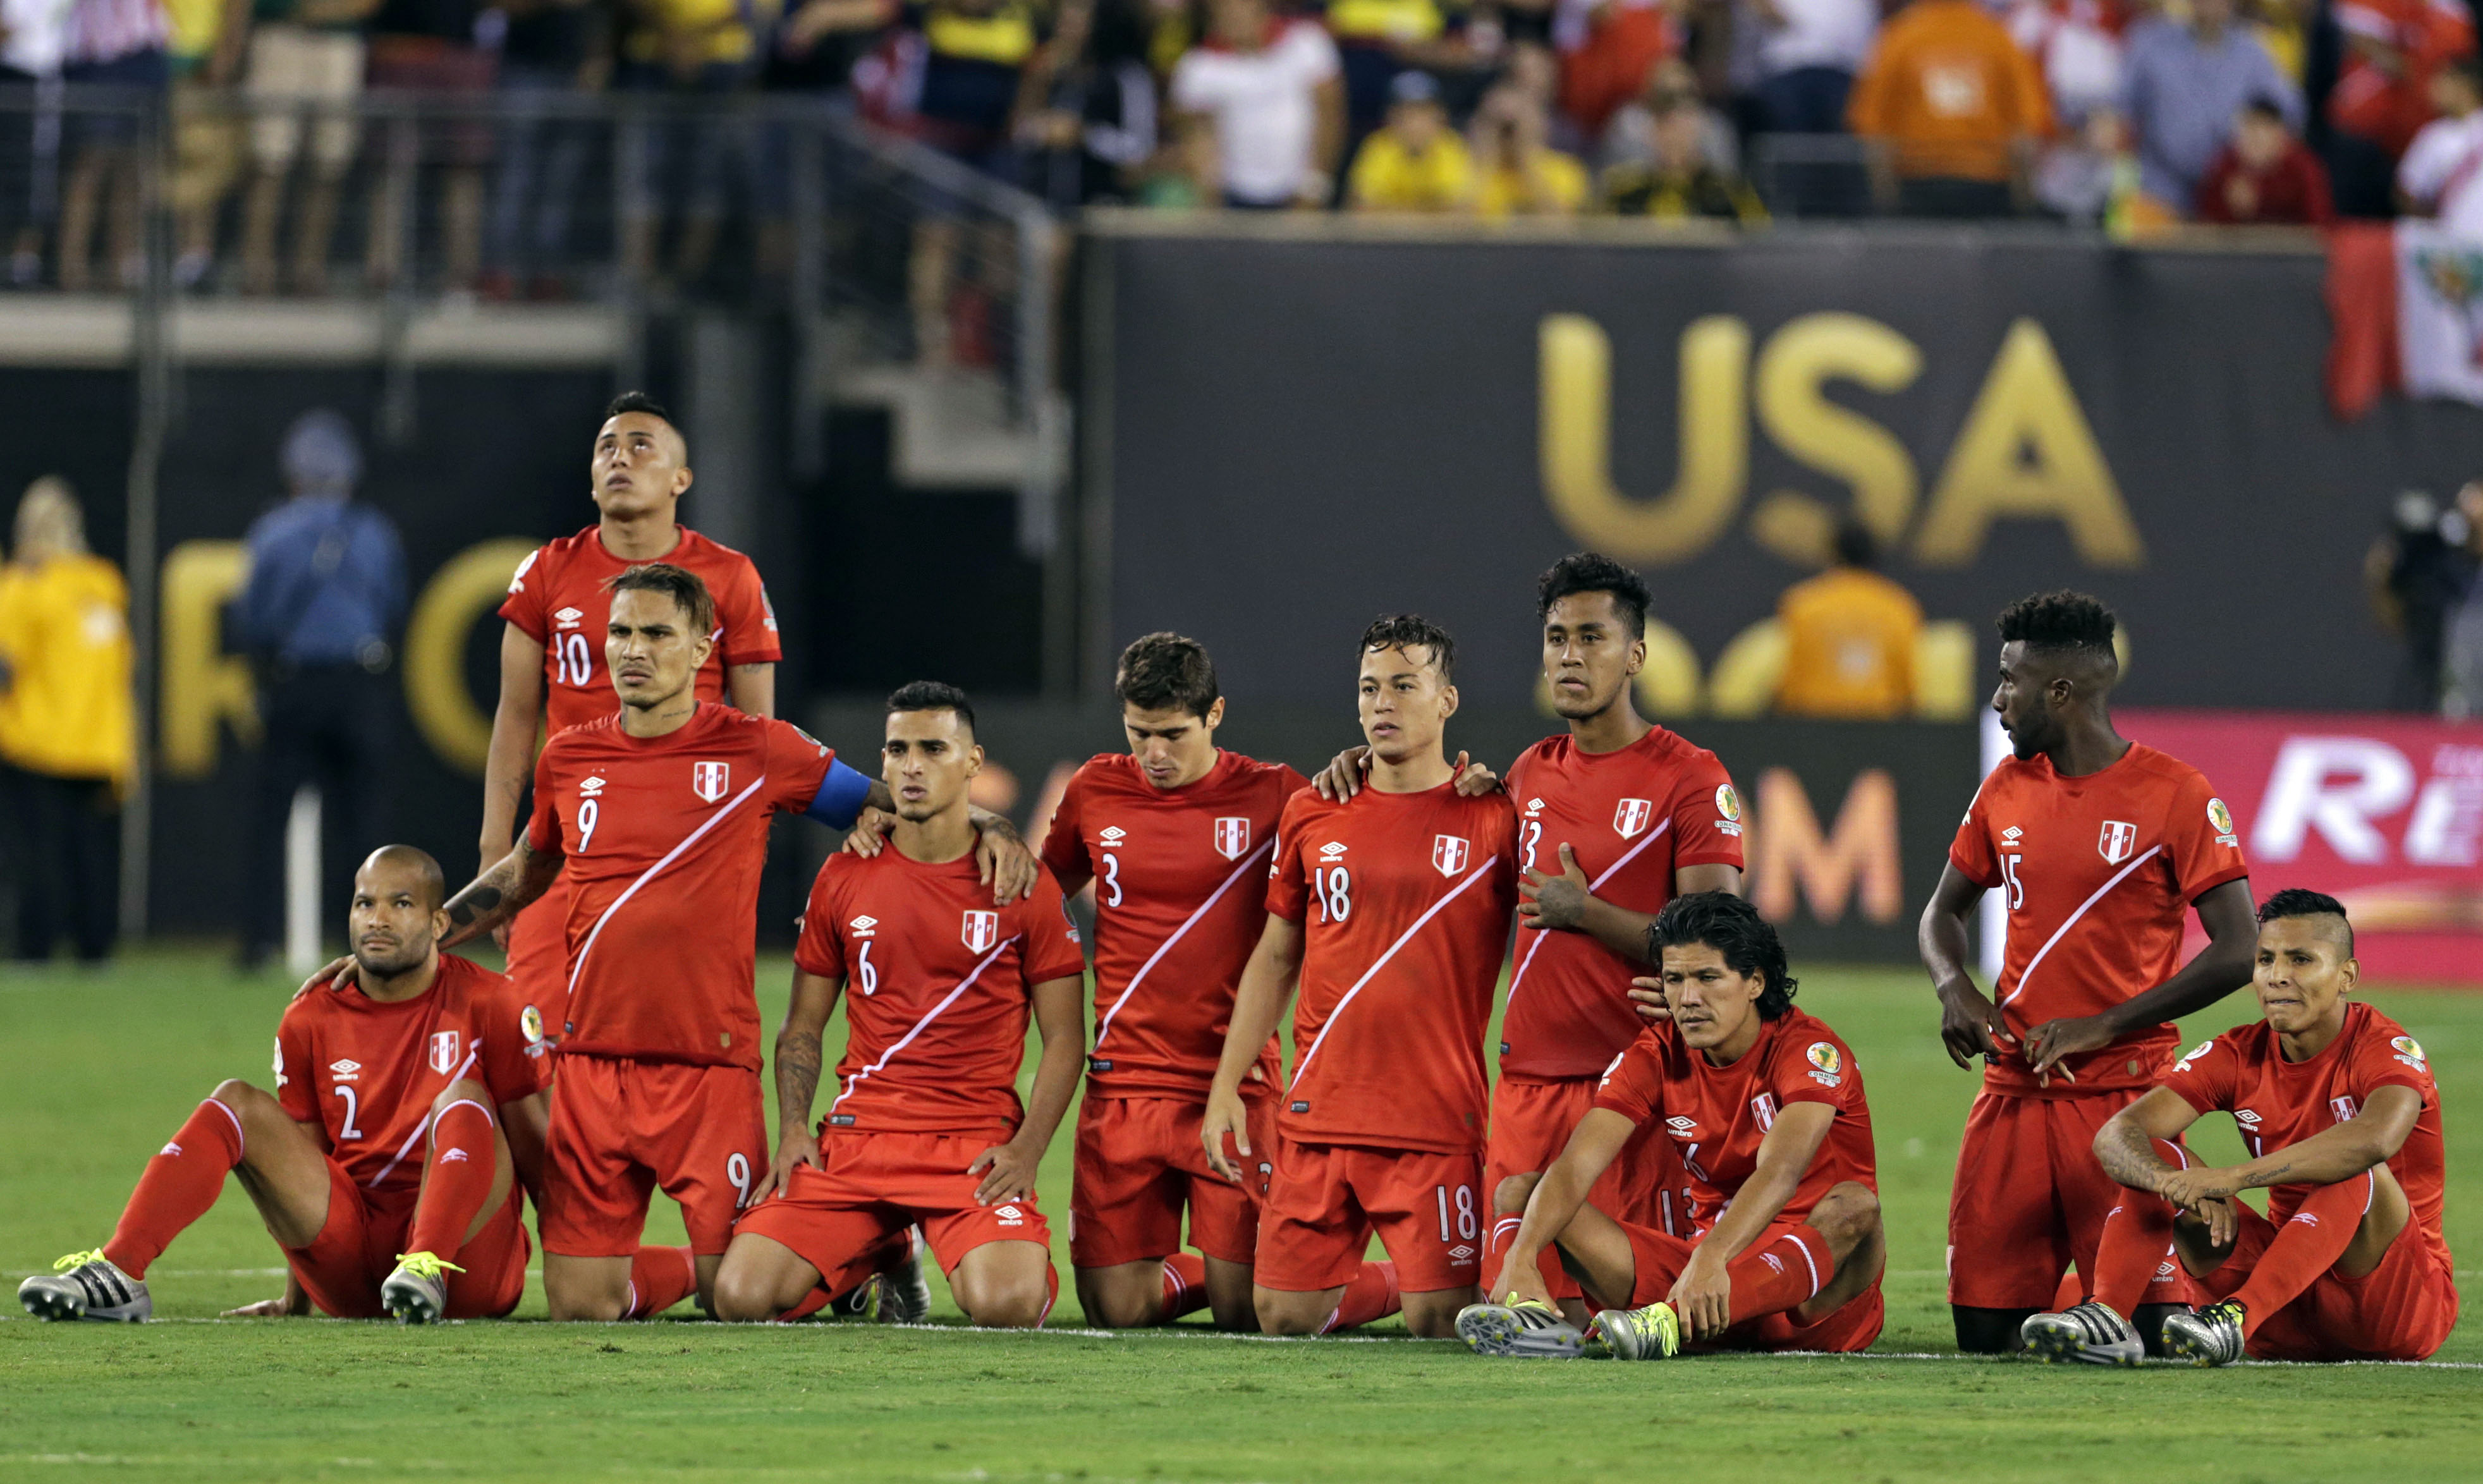 2d092d5fc Rumor: Peru out of World Cup, Italy or USMNT in? - Stars and Stripes FC